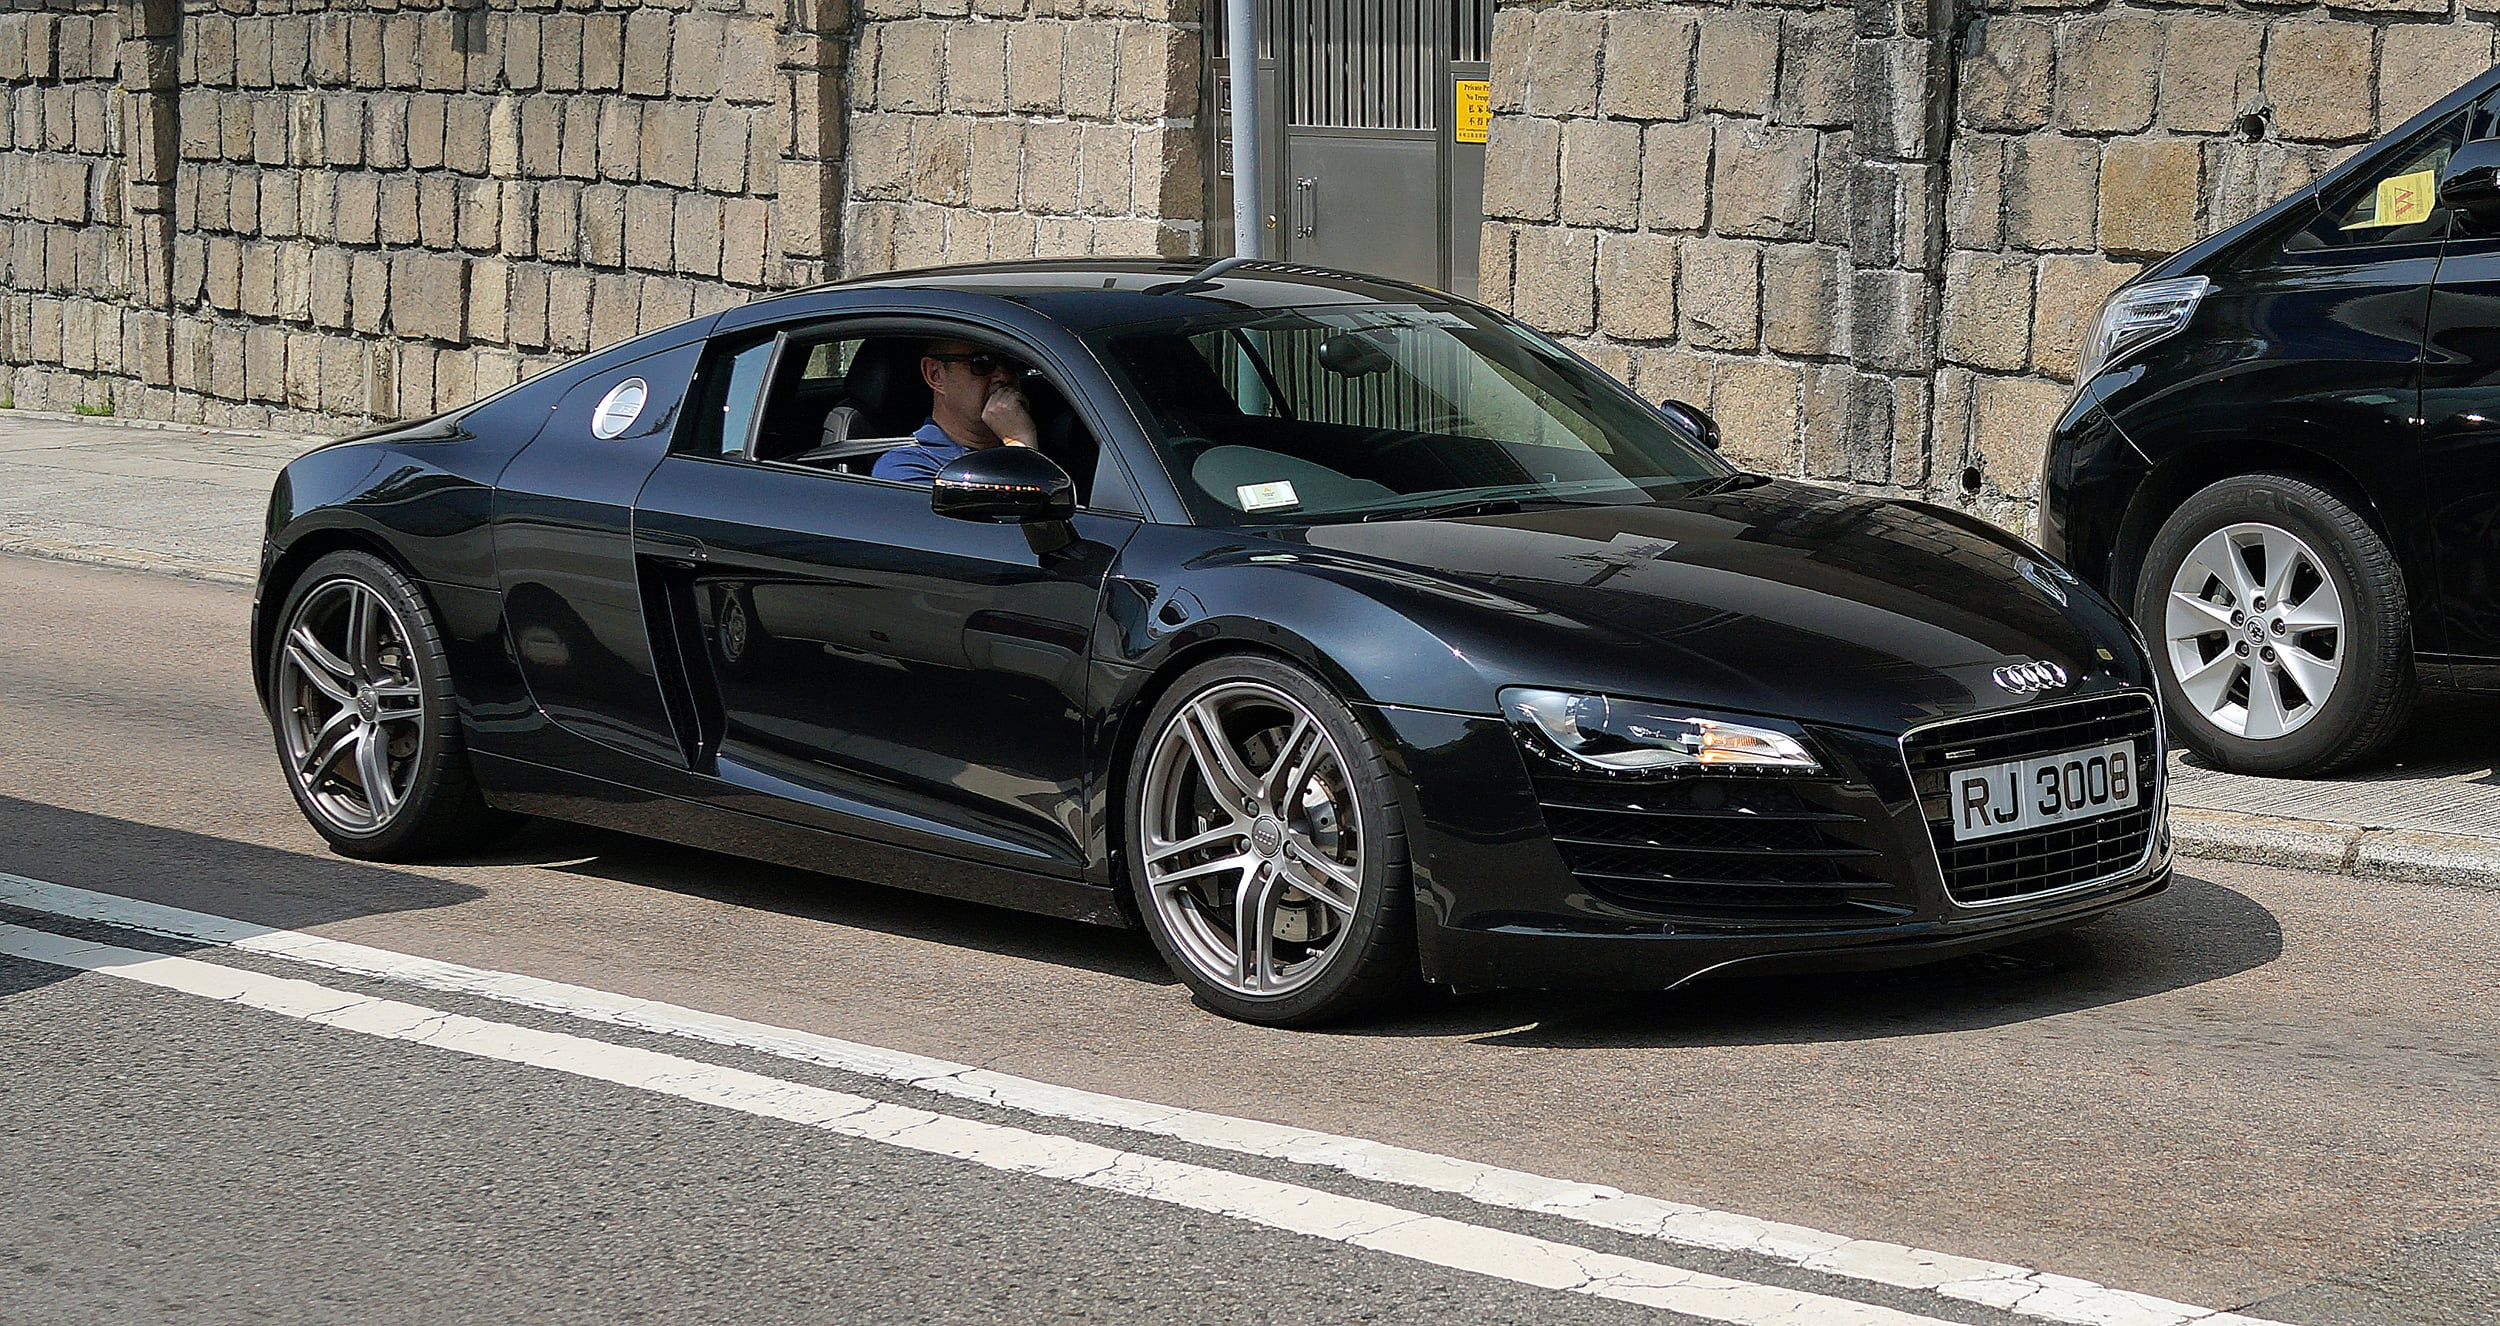 ... and when he can't be bothered with the Harley he takes out his Audi R8 for a spin !!